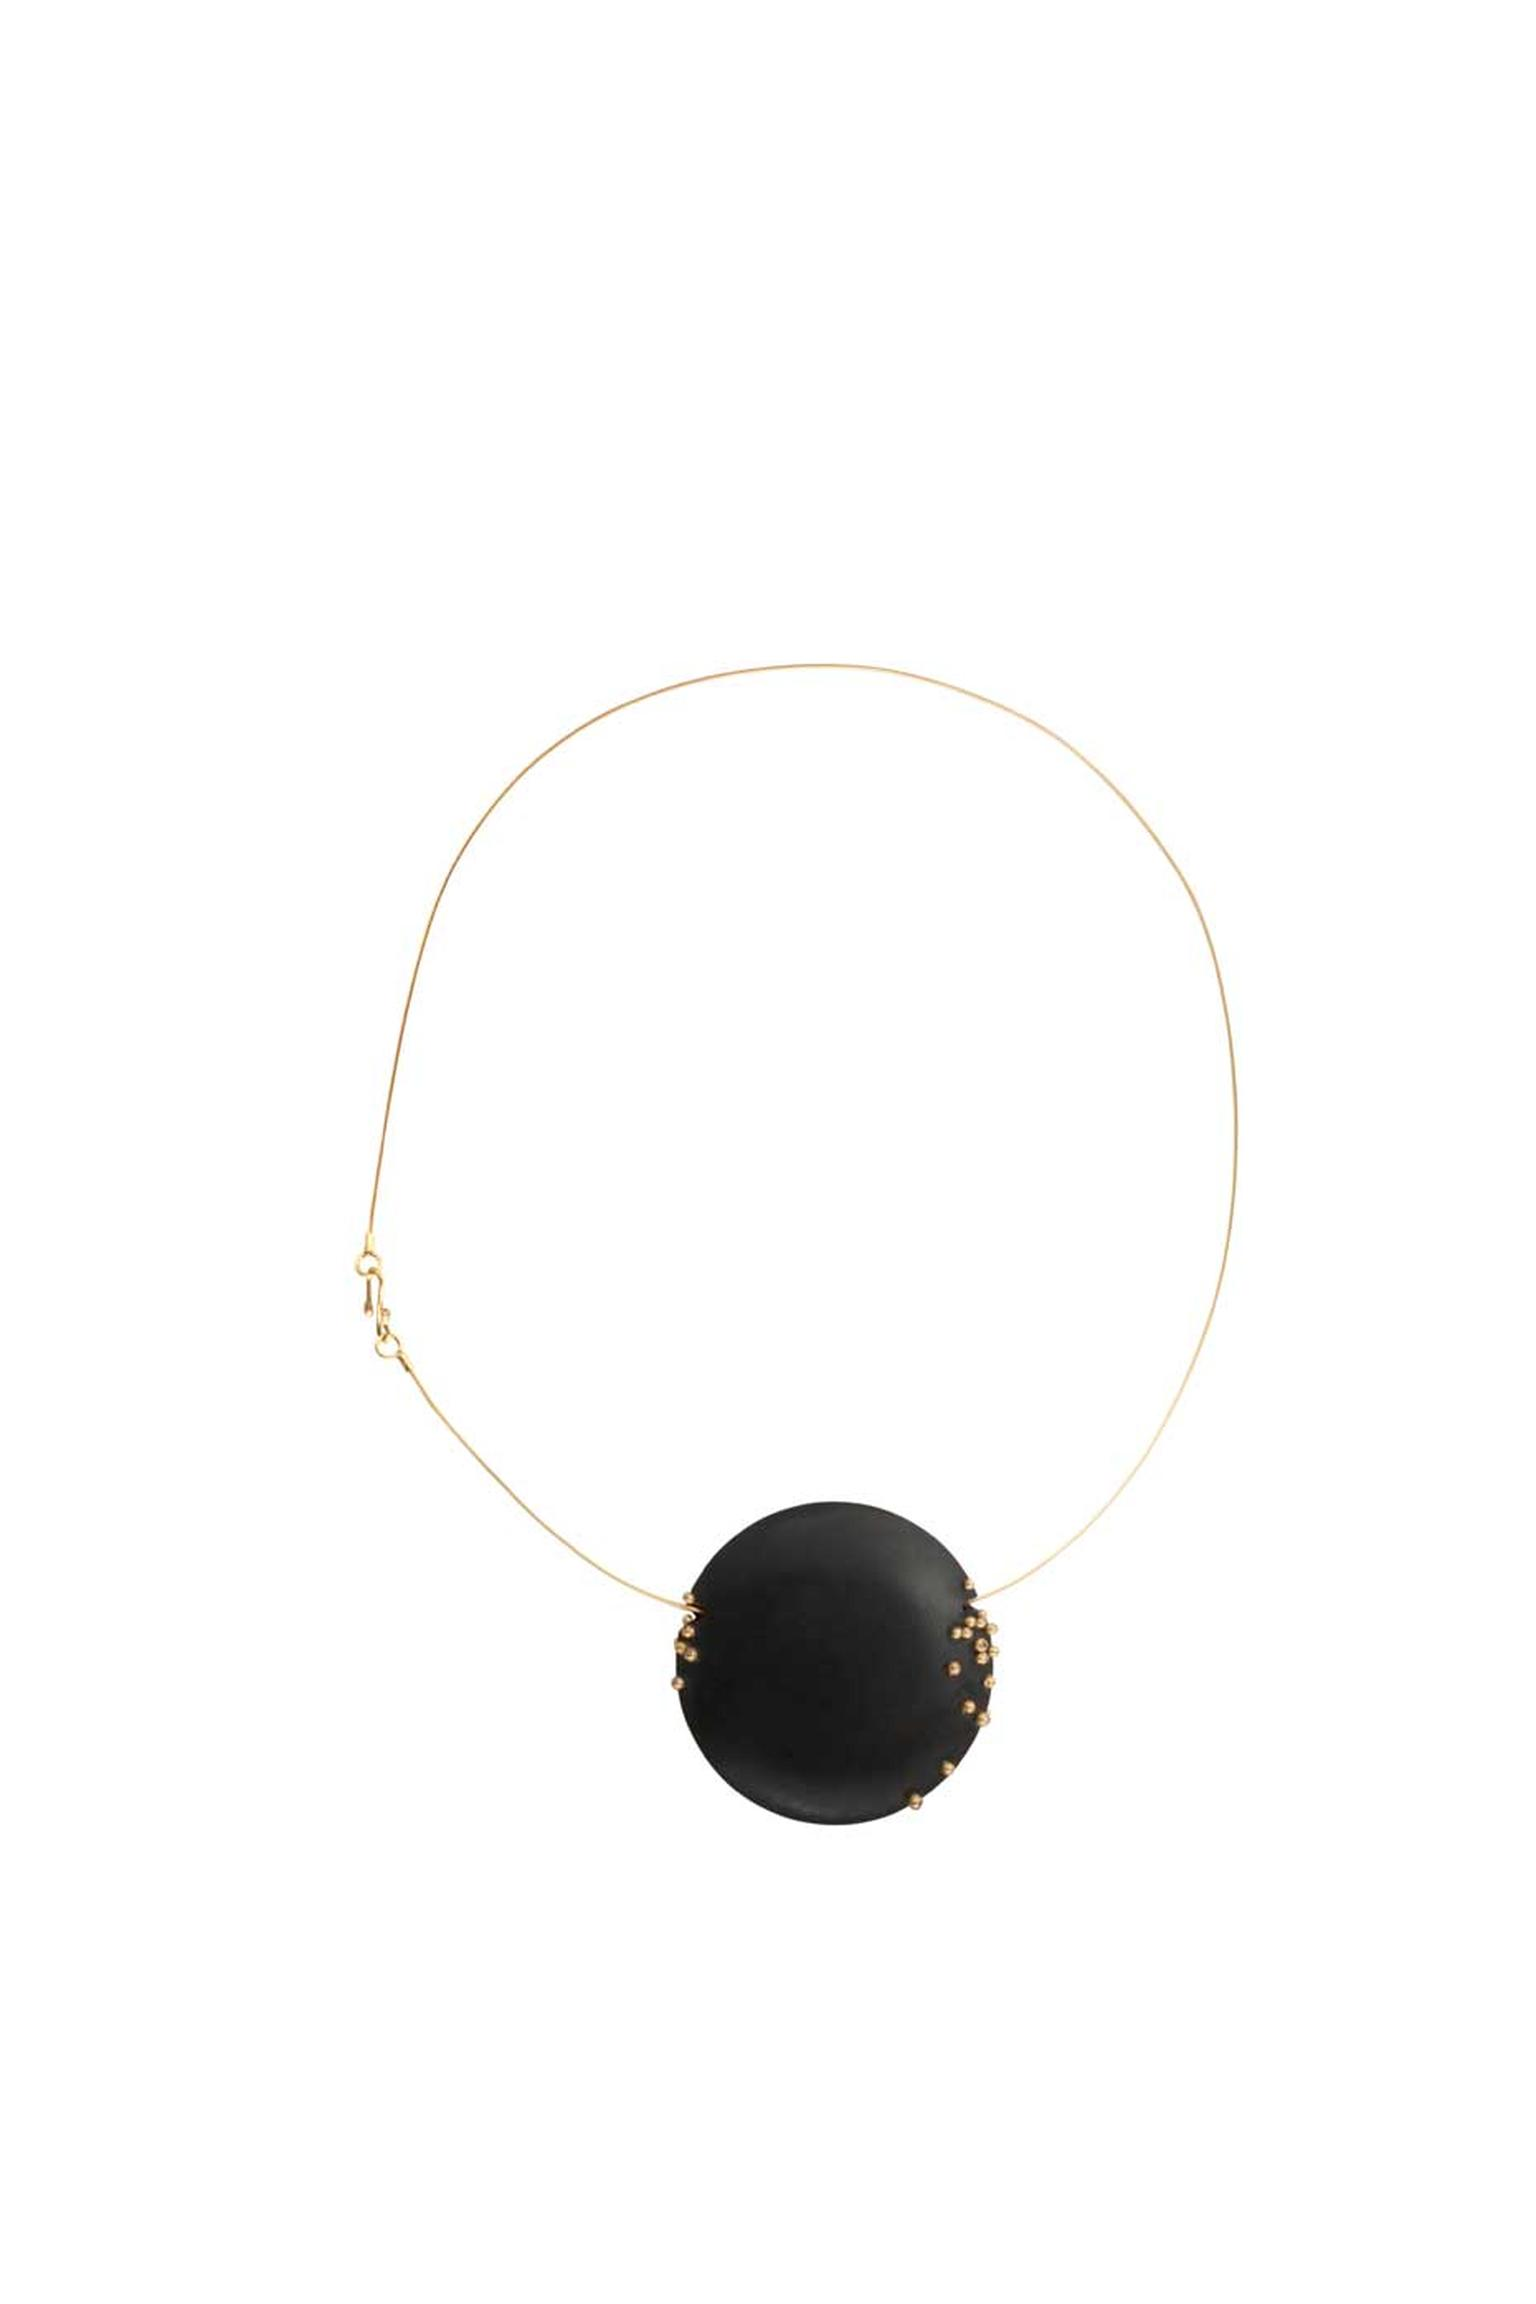 Jacqueline Cullen hand-carved Whitby jet pendant in gold, set with champagne diamonds.